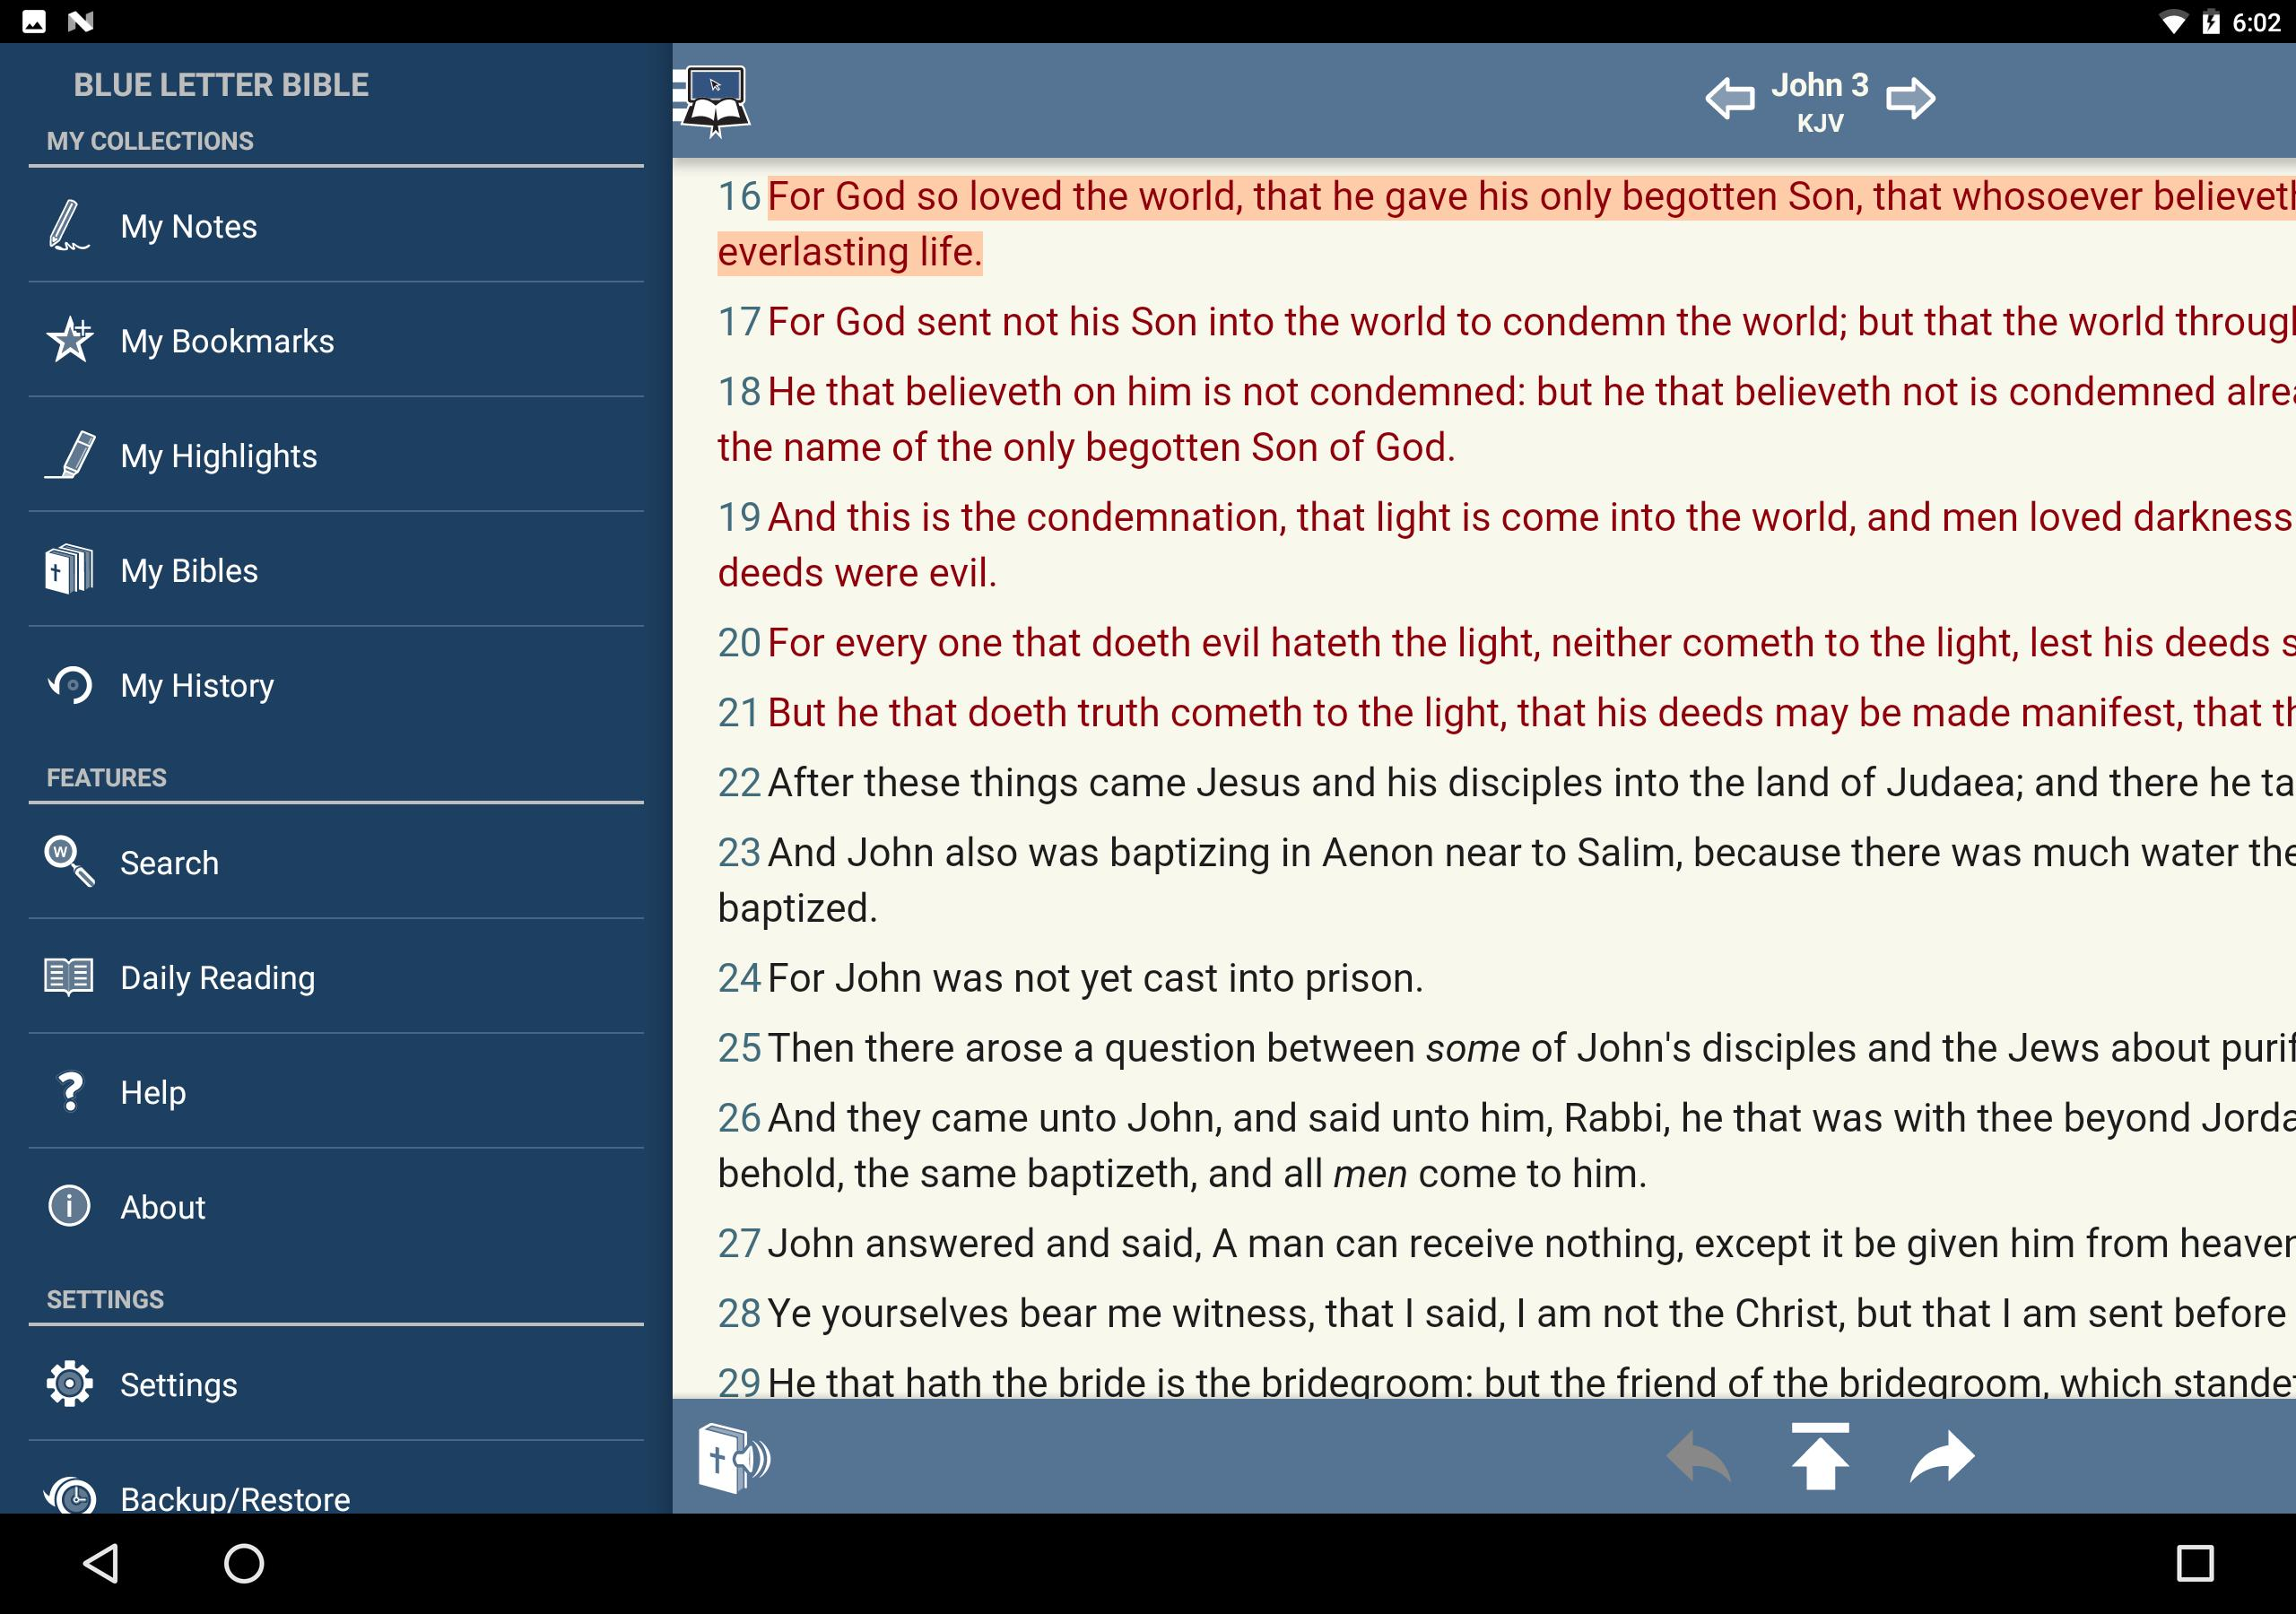 Blue Letter Bible for Android - APK Download